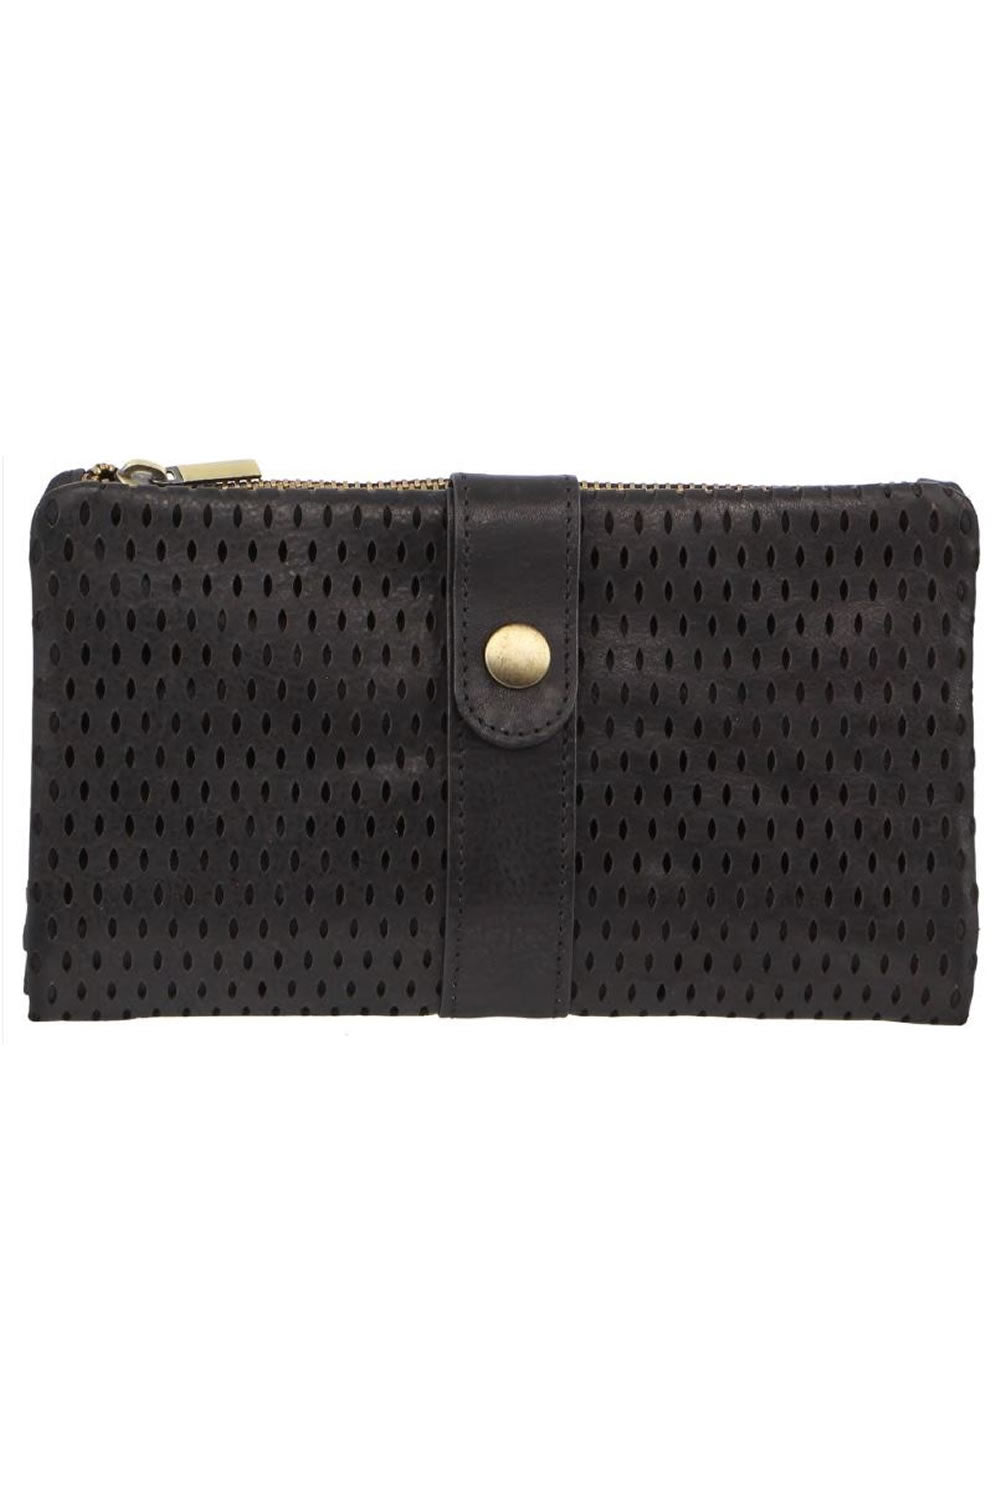 Pierre Cardin Perforated Leather RFID Wallet